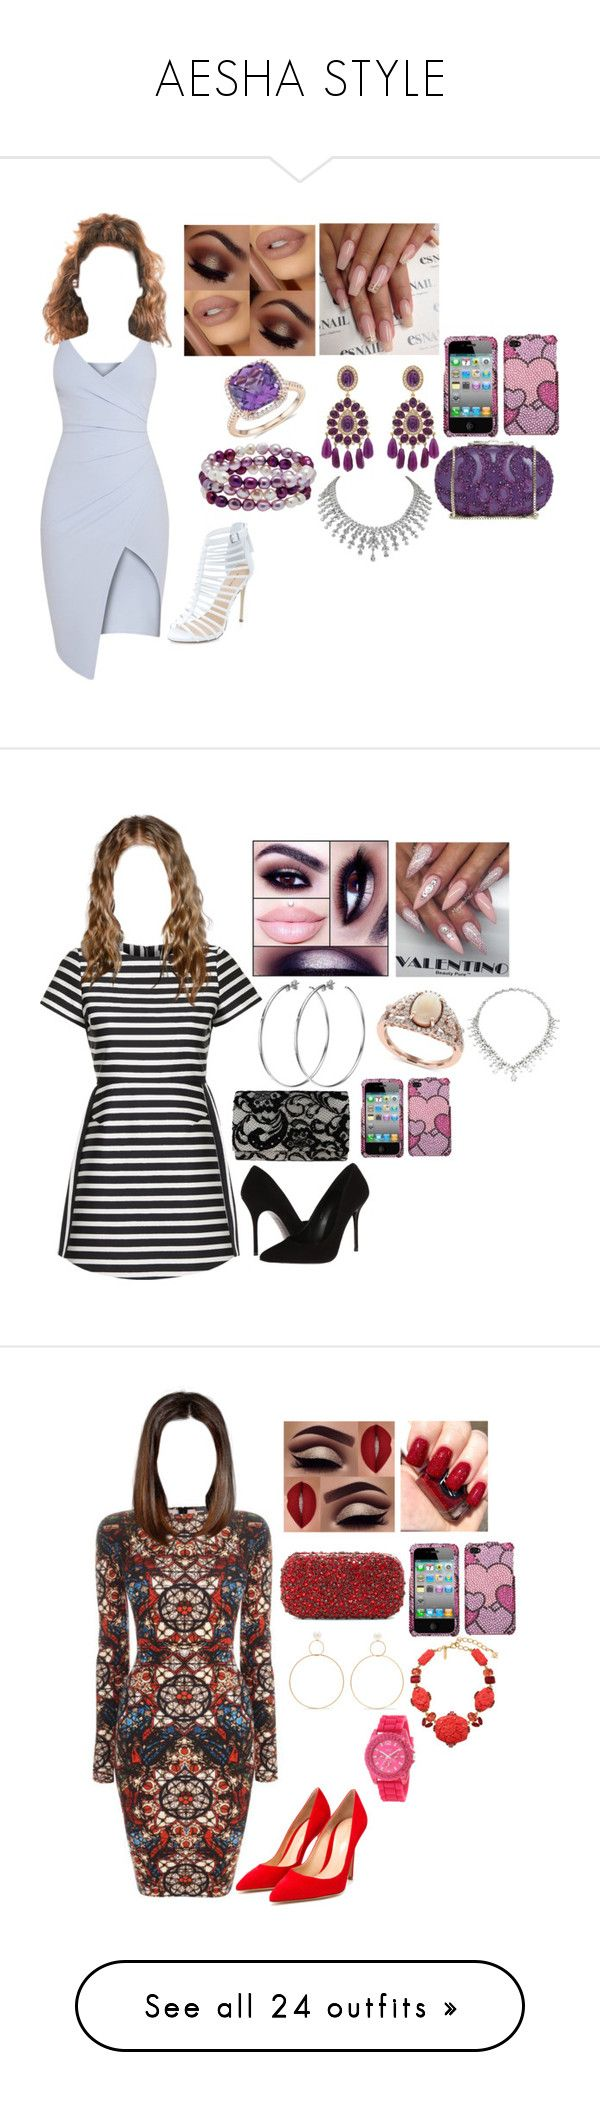 """""""AESHA STYLE"""" by usocrazygirl on Polyvore featuring Honora, Kenneth Jay Lane, Blue Nile, Elie Saab, Kurt Geiger, Topshop, DKNY, Effy Jewelry, Nina and Alexander McQueen"""